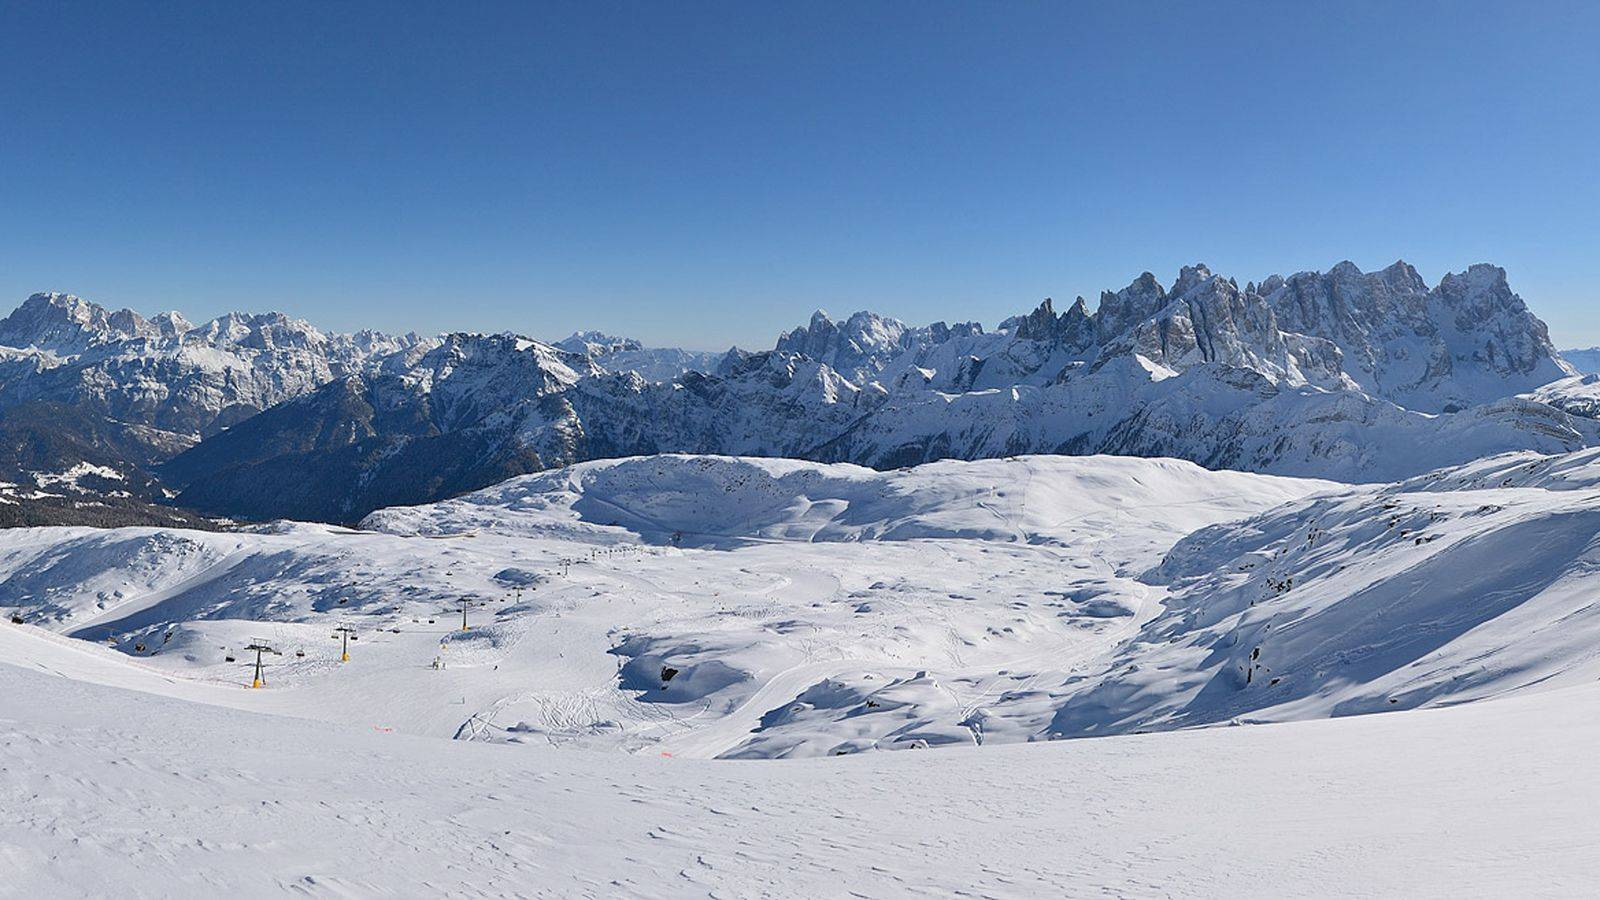 View of the San Pellegrino Pass ski resort surrounded by the Dolomites